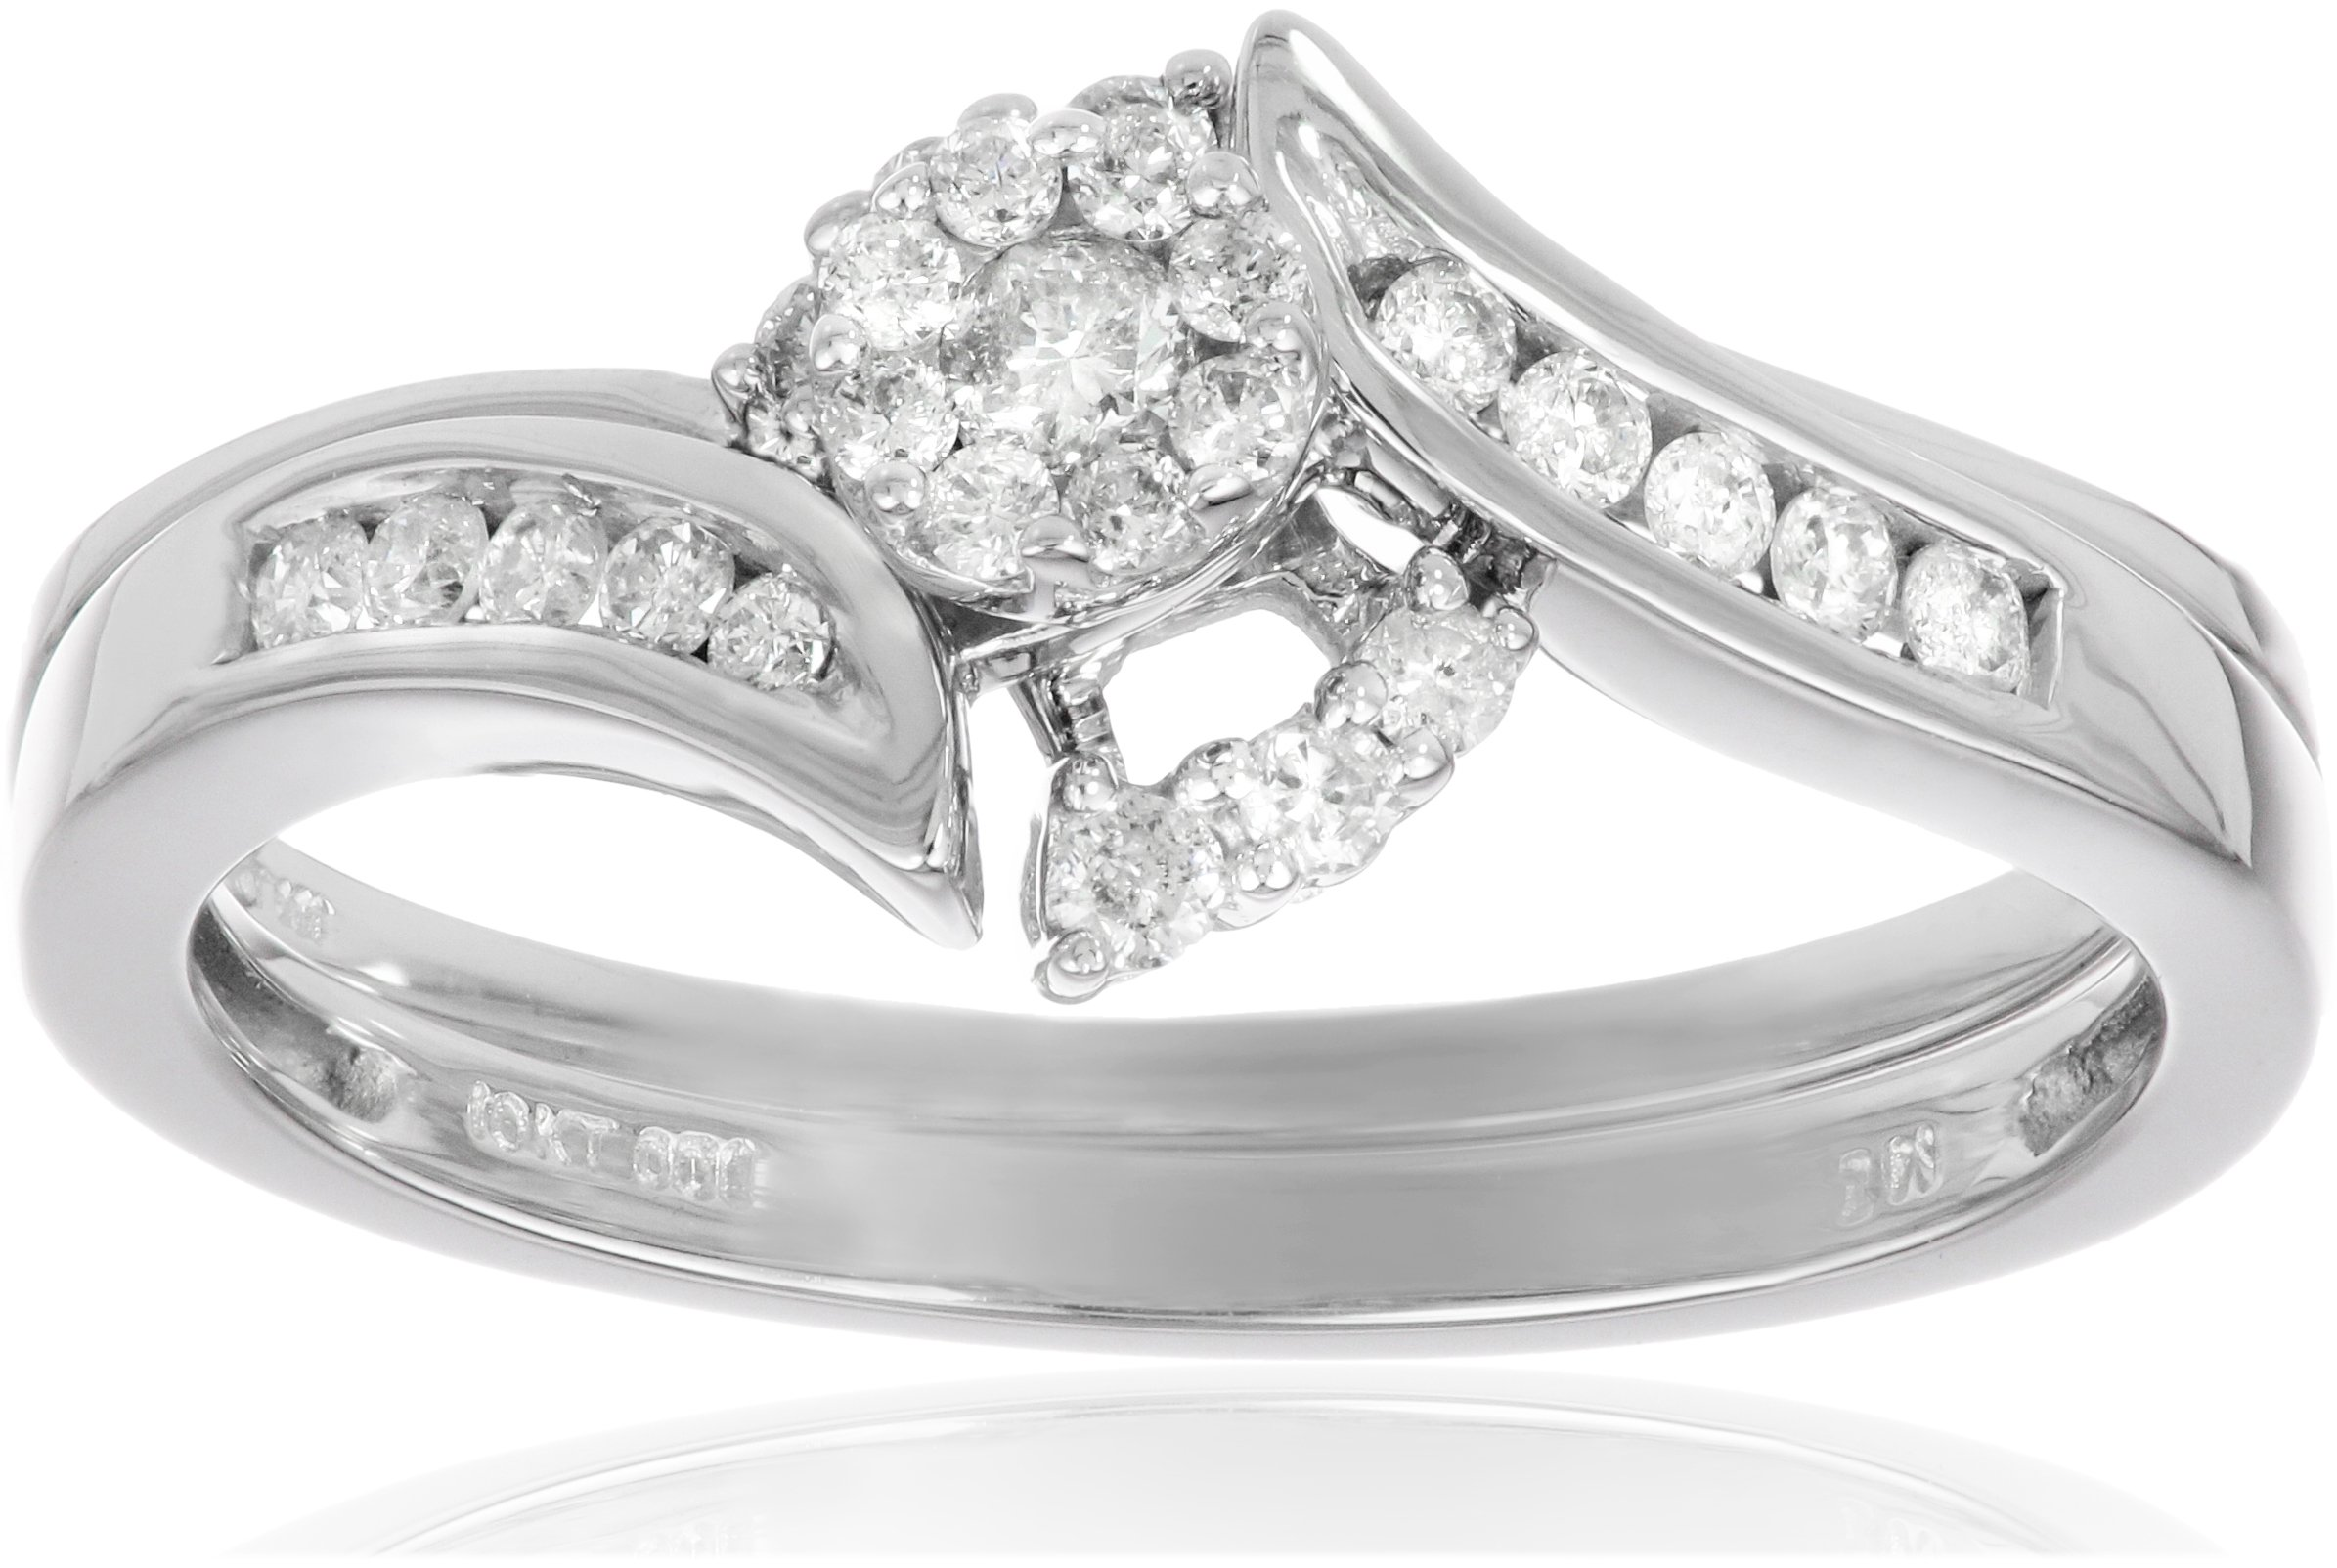 10k White Gold Round Cluster Top Diamond Bypass with Interlocking Band Bridal Set (0.25 cttw I-J Color, I2-I3 Clarity), Size 6